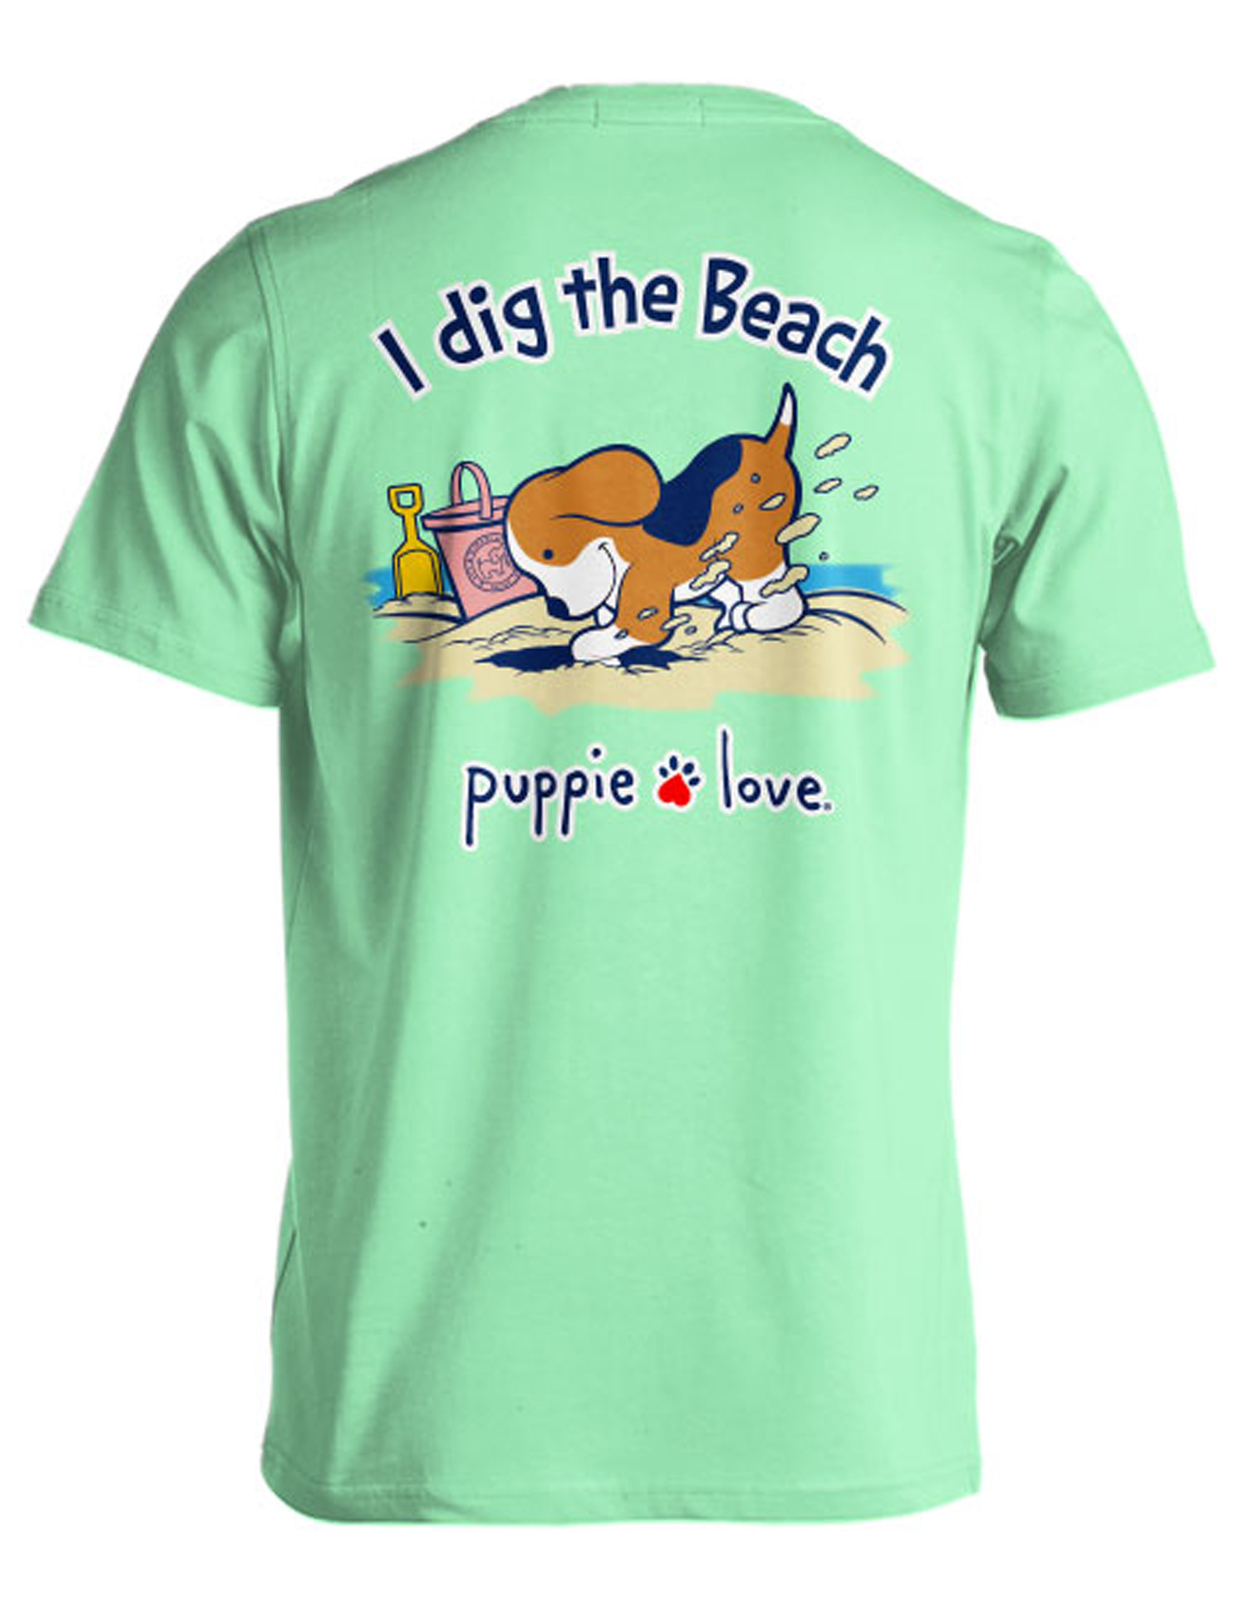 Puppie Love Rescue Dog Adult Unisex Short Sleeve Graphic T-Shirt, Digging Pup